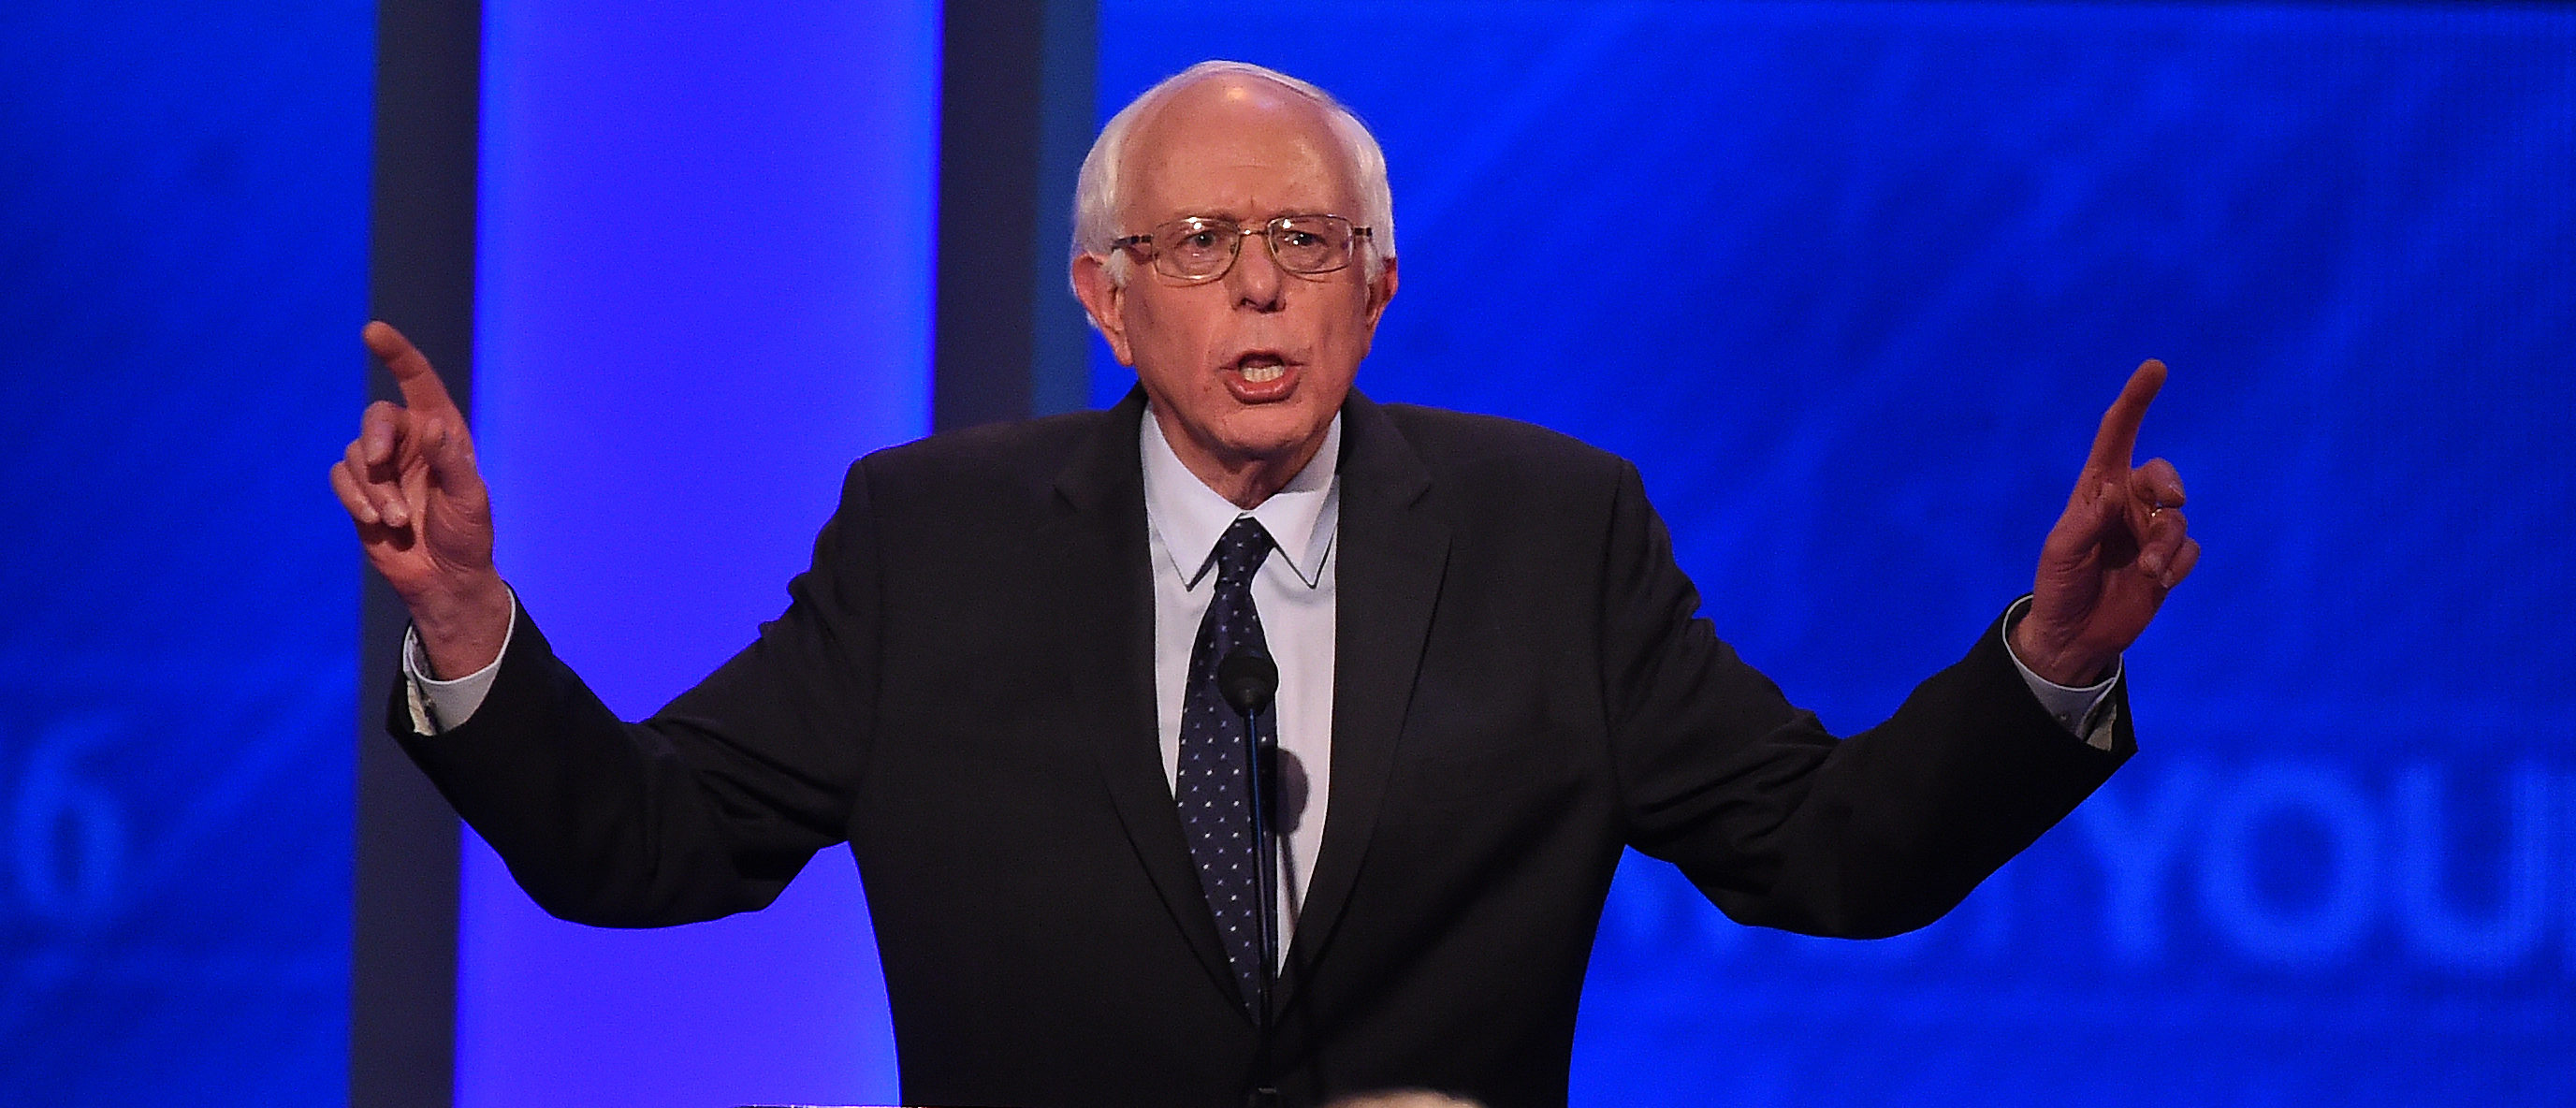 Democratic Sen. Bernie Sanders participates in the Democratic Presidential Debate hosted by ABC News at the Saint Anselm College in Manchester, New Hampshire, on December 19, 2015. (JEWEL SAMAD/AFP/Getty Images)